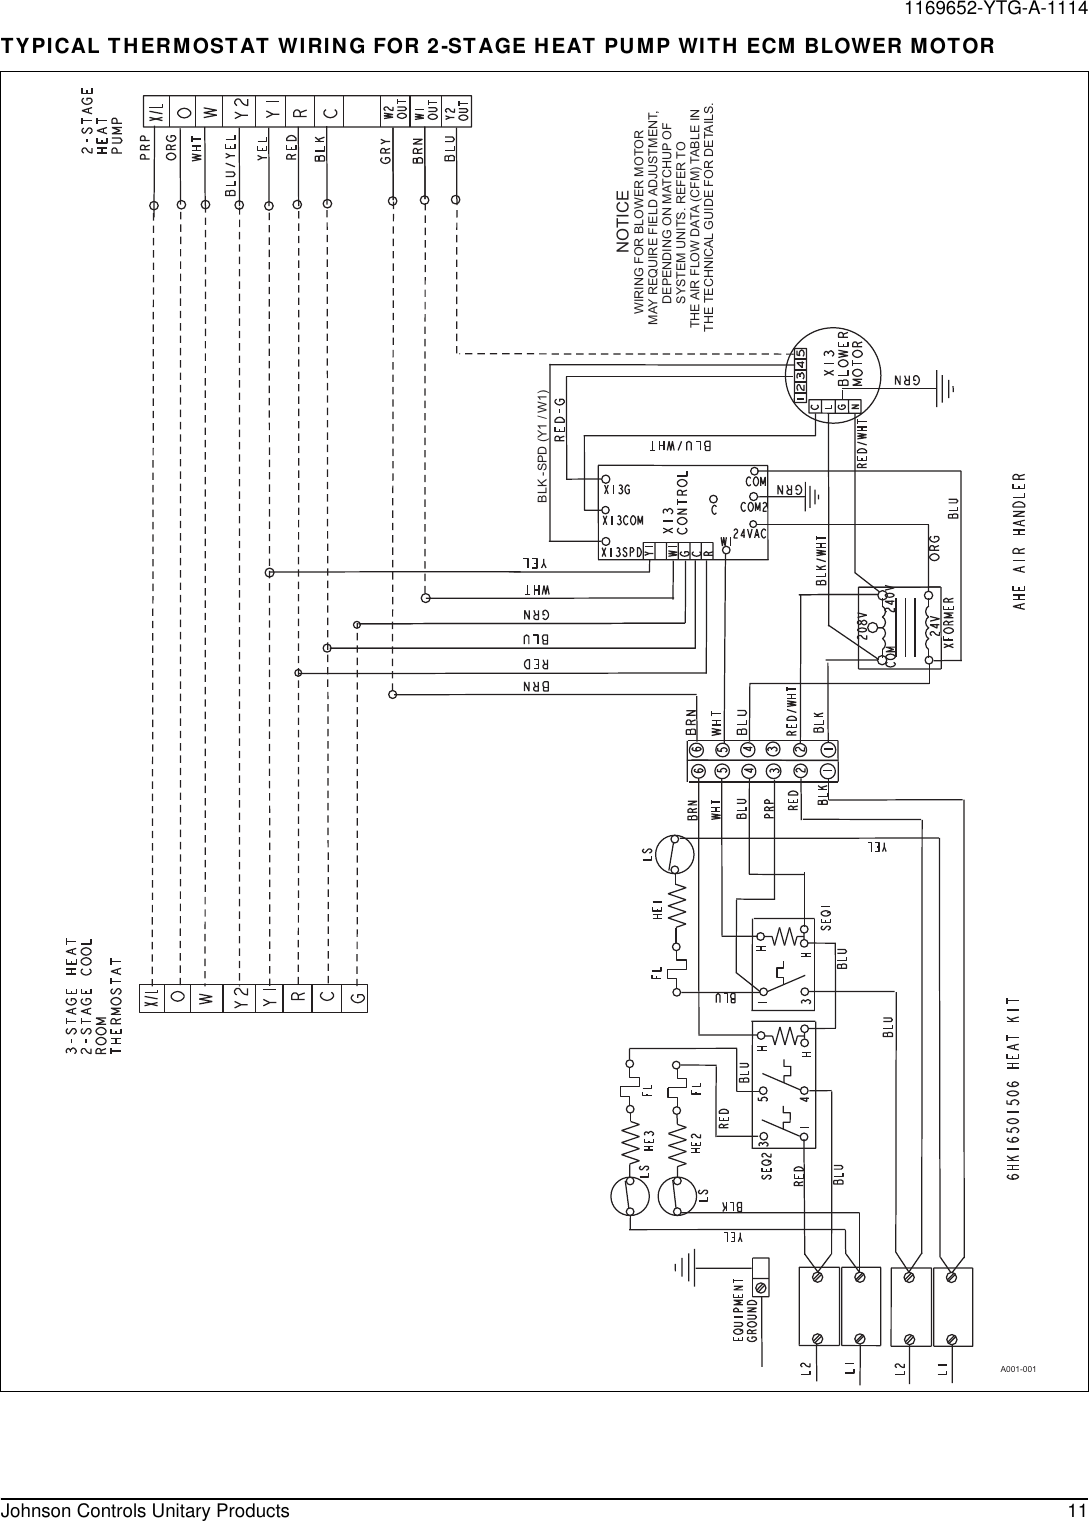 York Ae Air Handler Technical Guide 1169652 Ytg A 1114 Heat Pump Schematic Page 11 Of 12